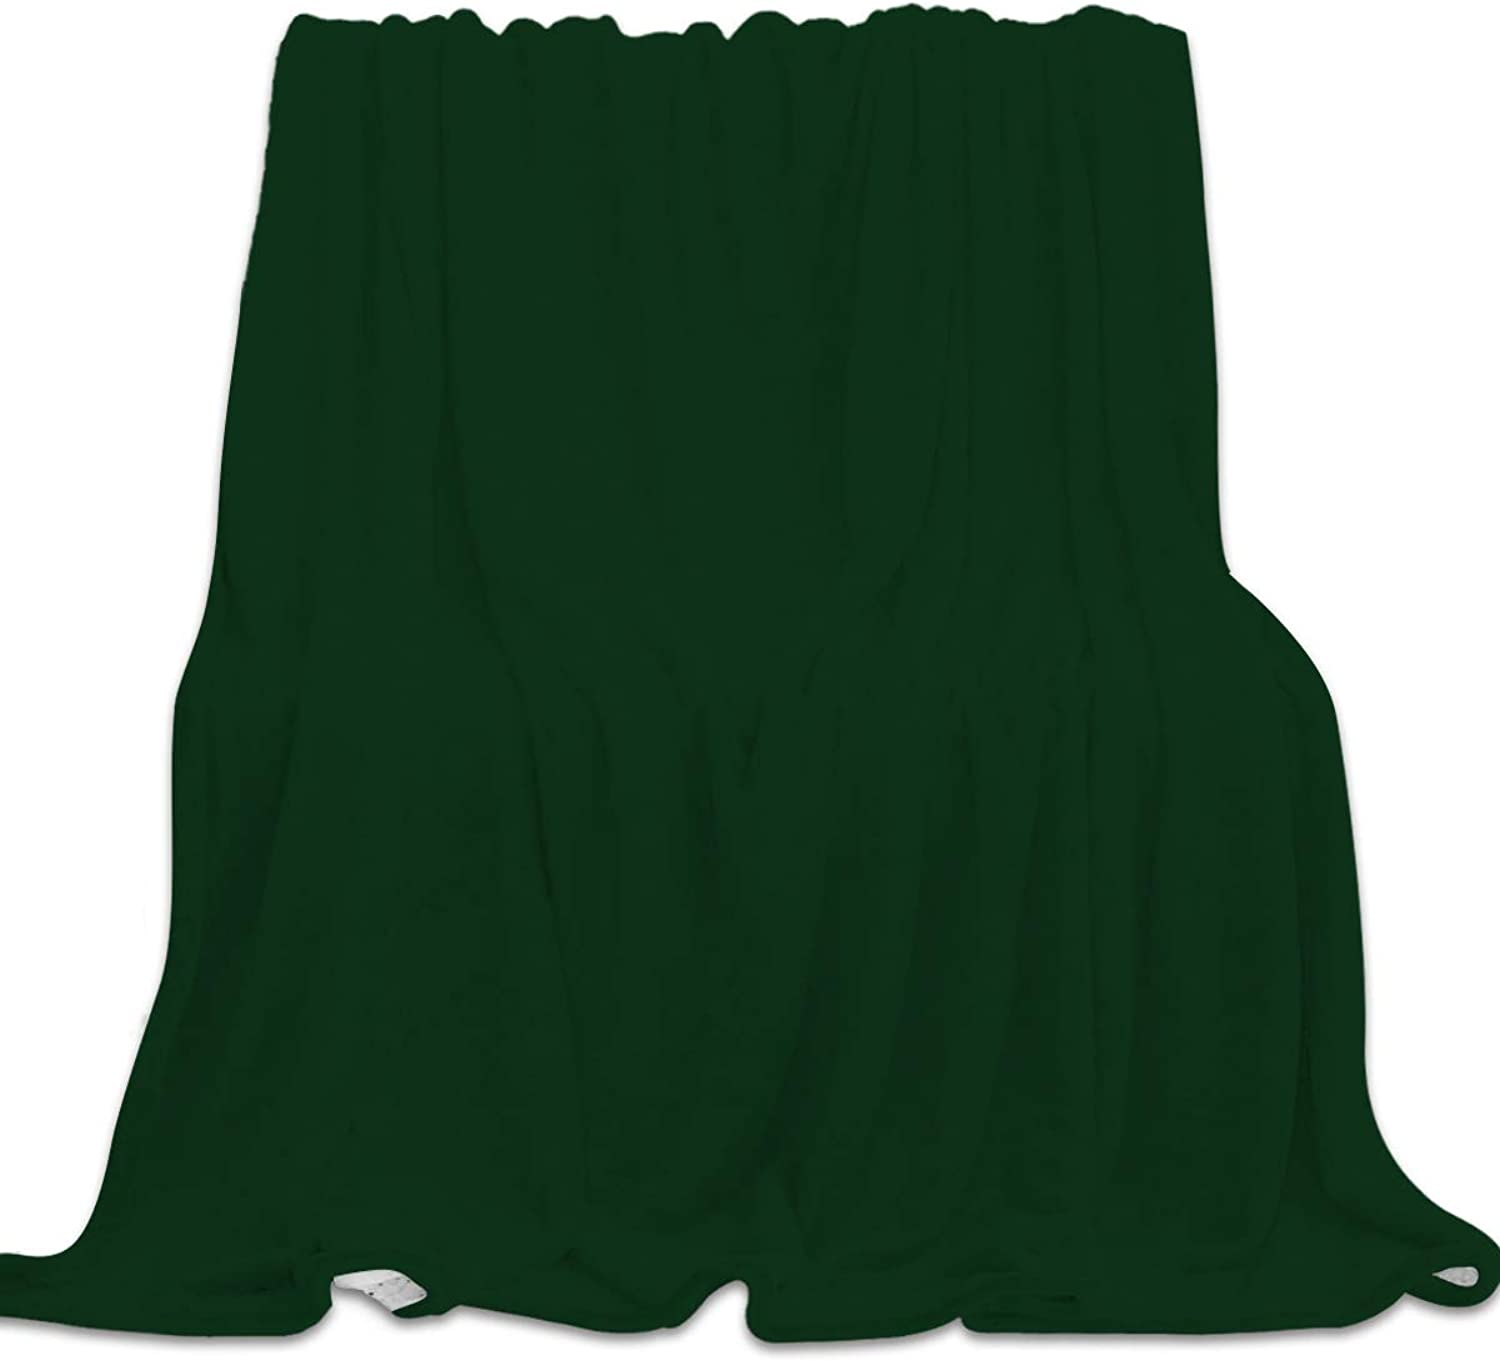 YEHO Art Gallery 39x49 Inch Flannel Fleece Bed Blanket Soft Throw-Blankets for Girls Boys,Dark Green Pattern,Lightweight Warm Kids Blankets for Bedroom Living Room Sofa Couch Home Decor